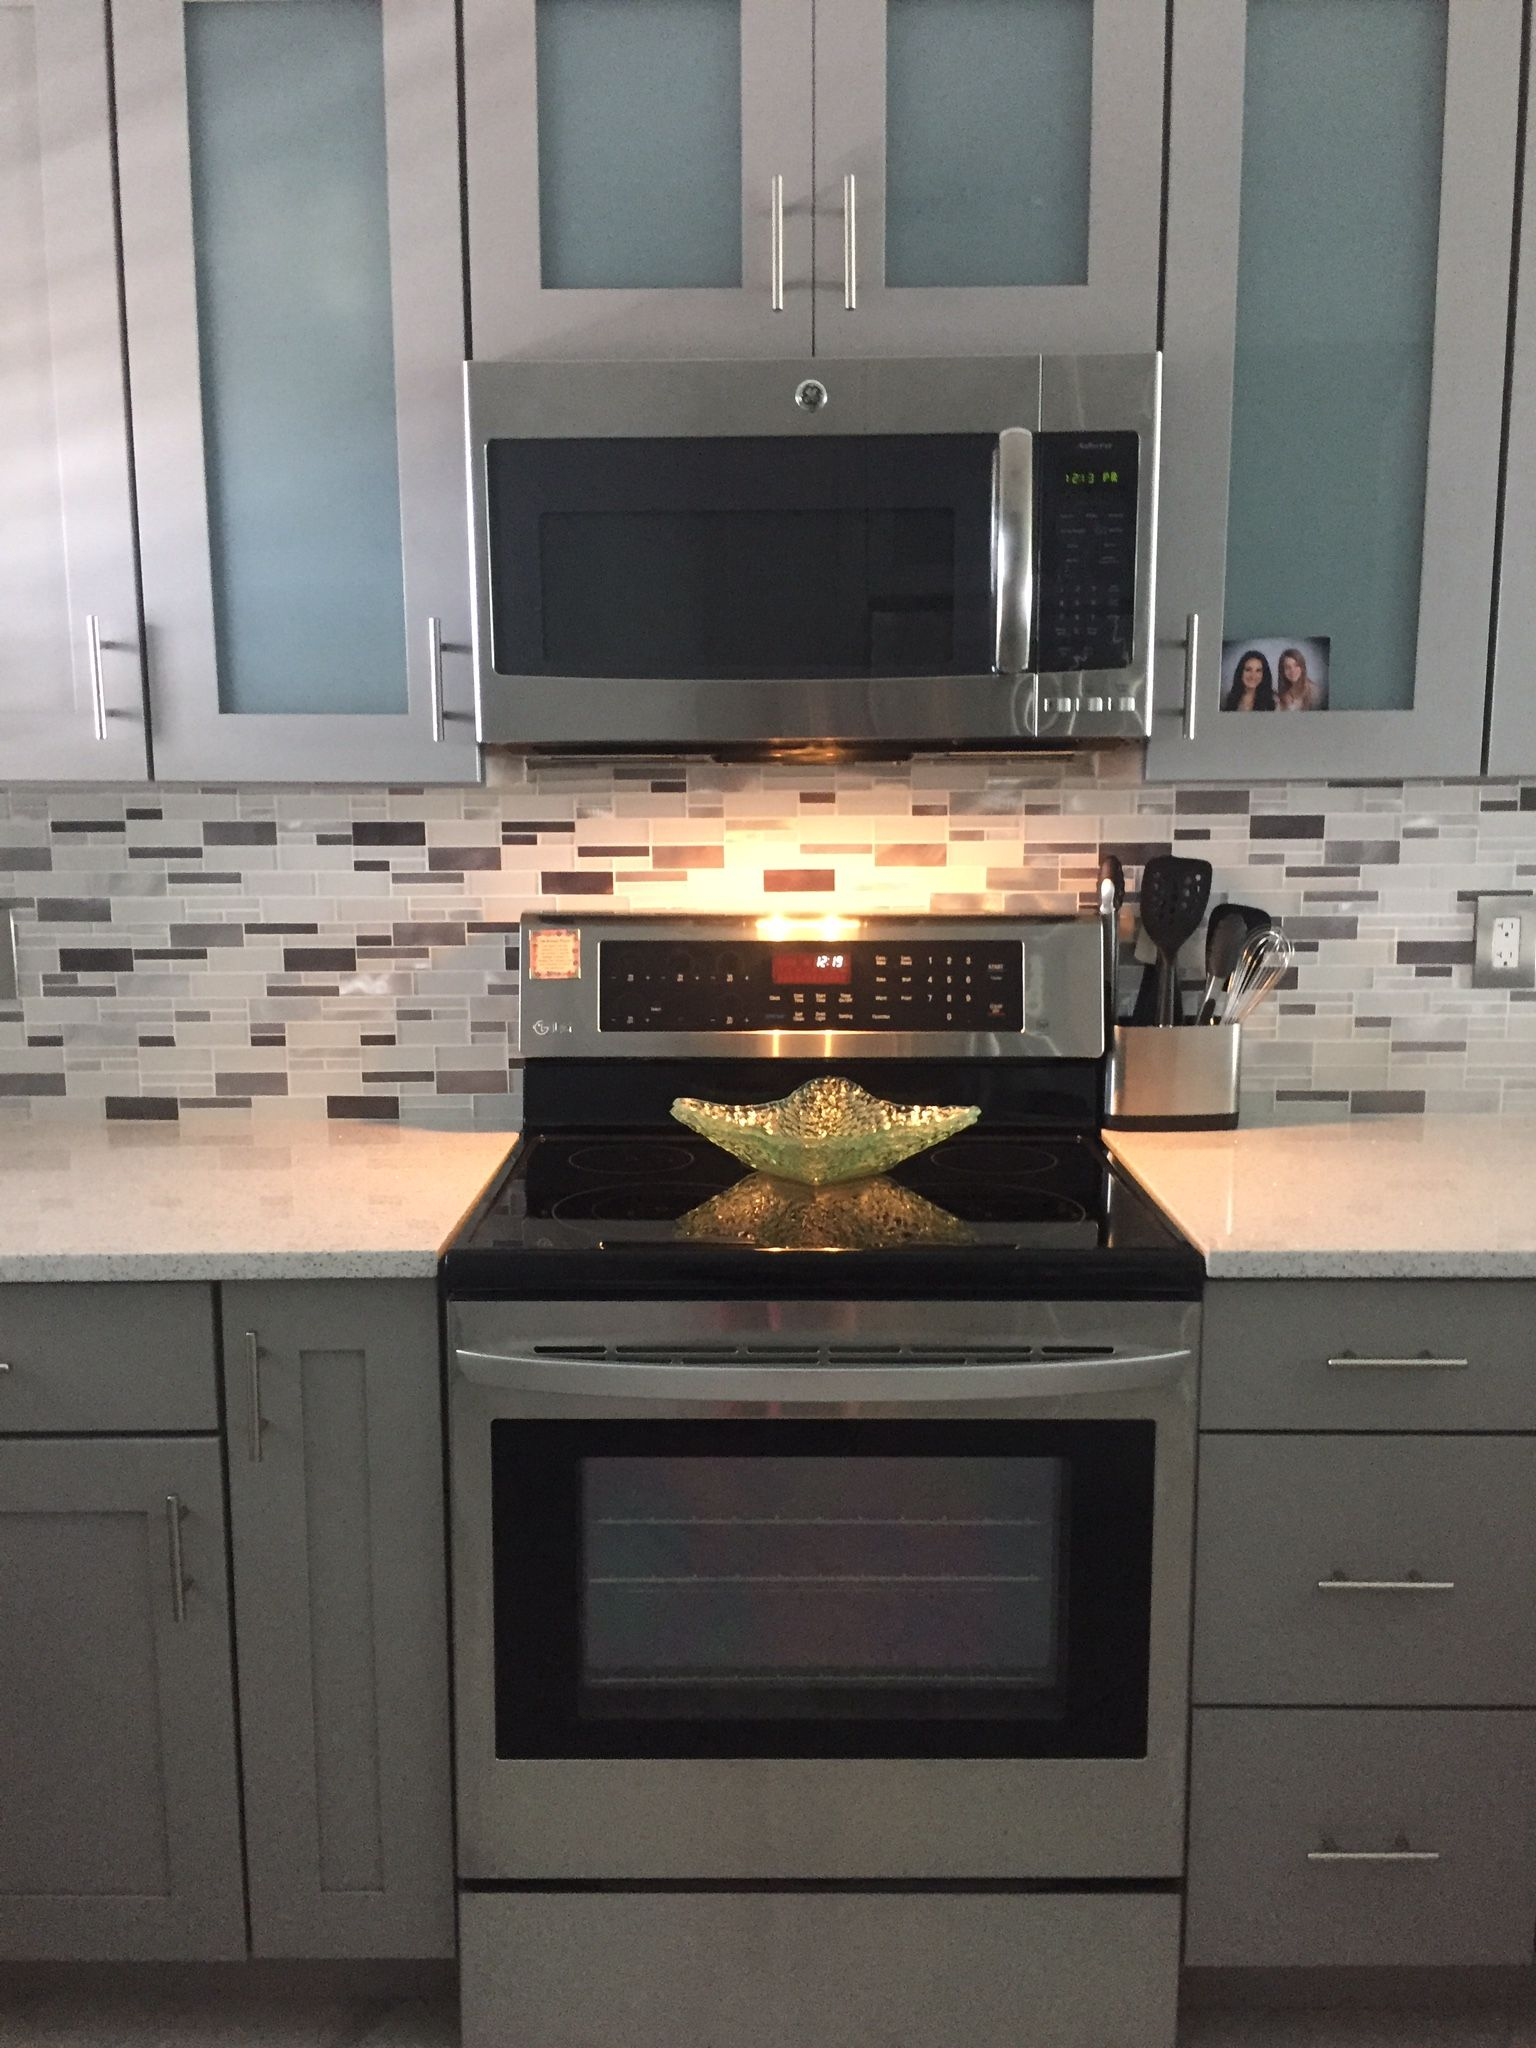 My Sarasota Kitchen! Cabinets: Kraftmaid Pebble Grey With Shaded Glass  Inserts Counters : Cambria, Whitney... So Sparkly Backsplash: Chromes,  Grey, ...